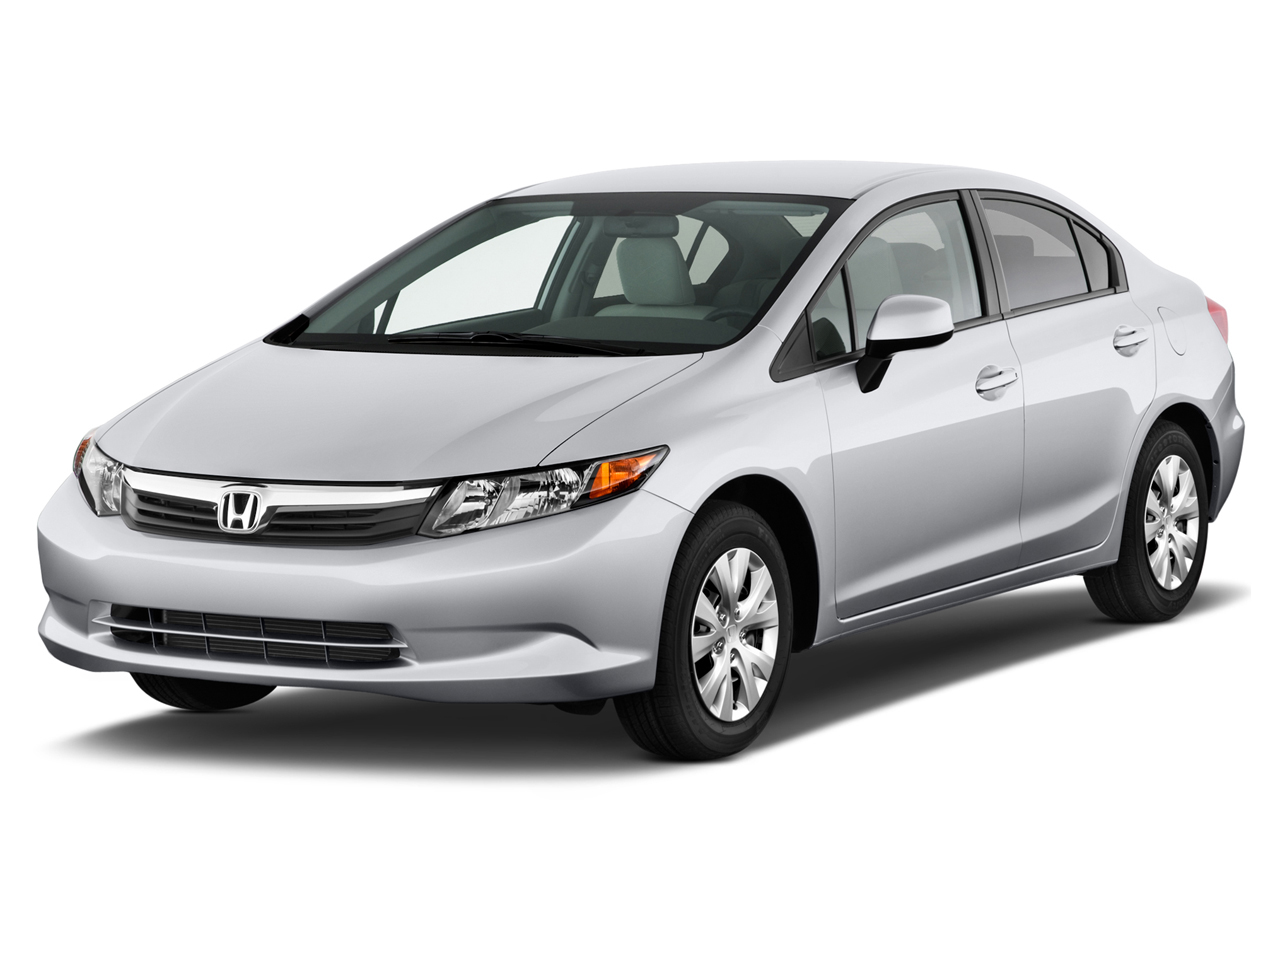 Bmw Of Fresno >> 2012 Honda Civic Review, Ratings, Specs, Prices, and ...